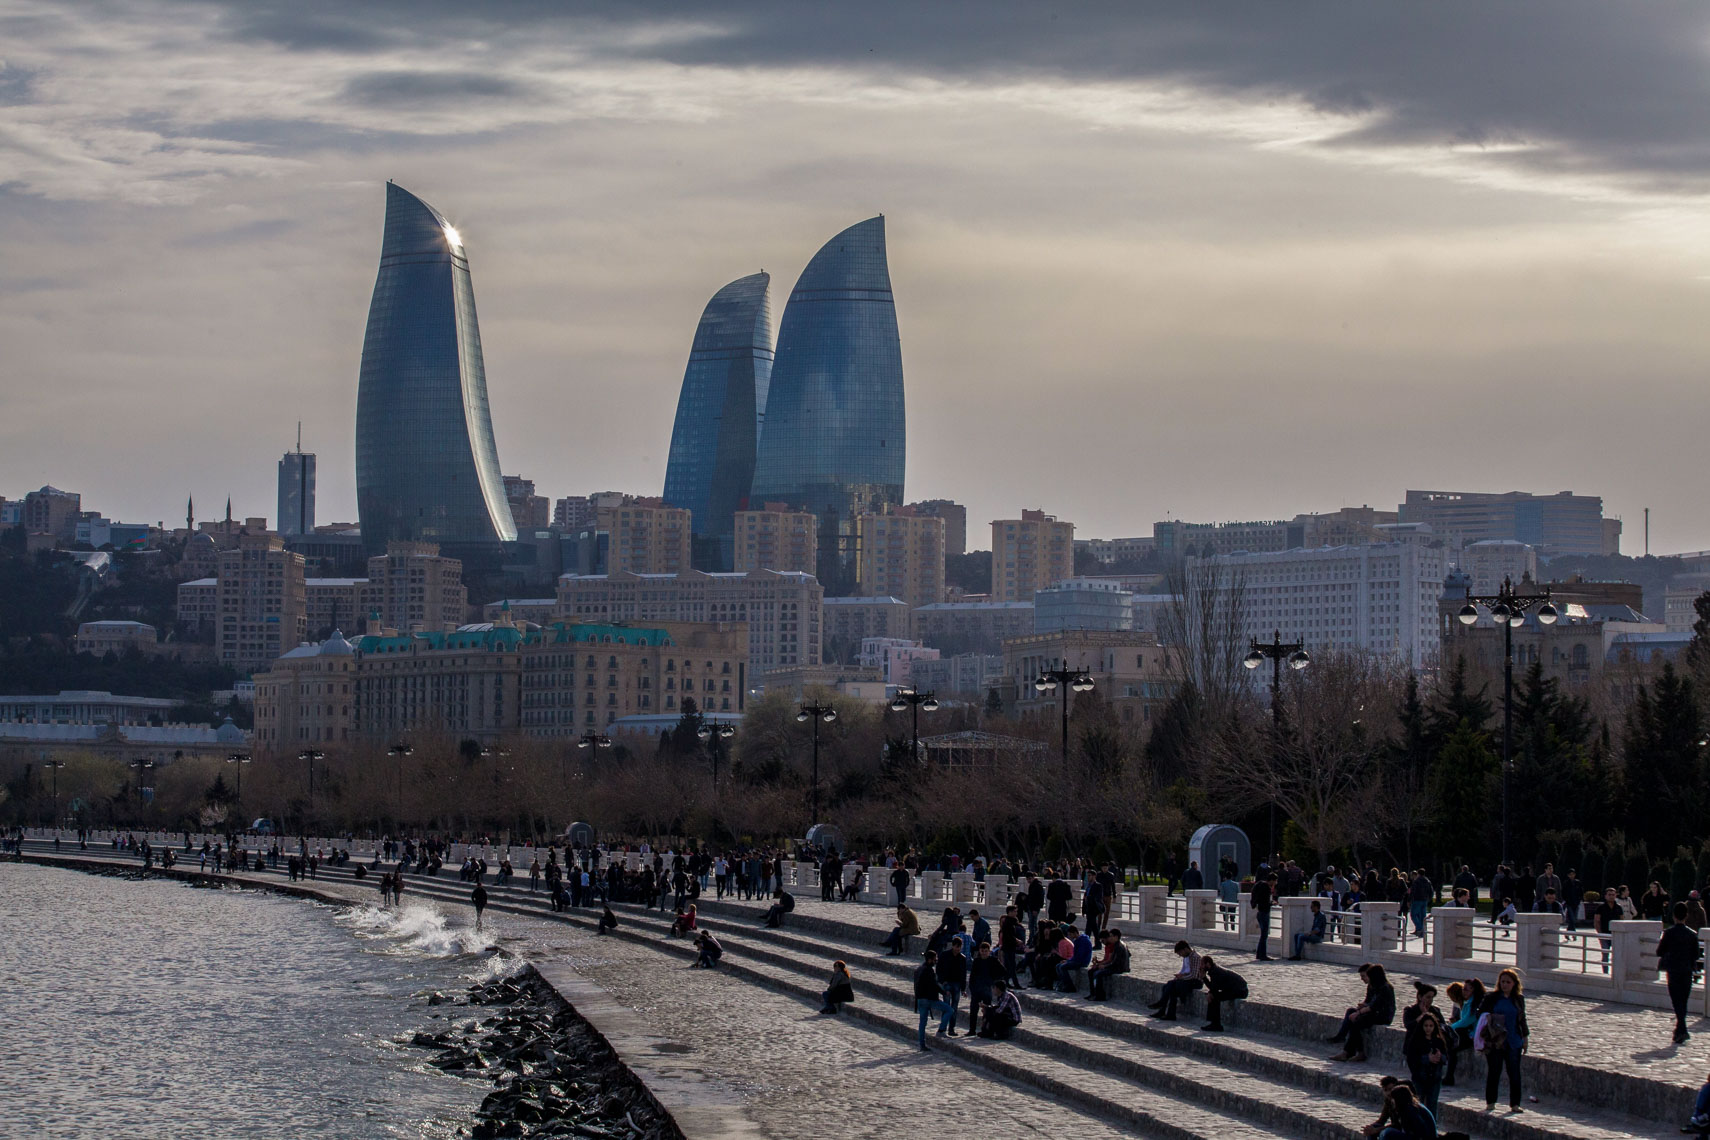 1204Baku Azerbaijan, the Flame Towers, Caspian Sea